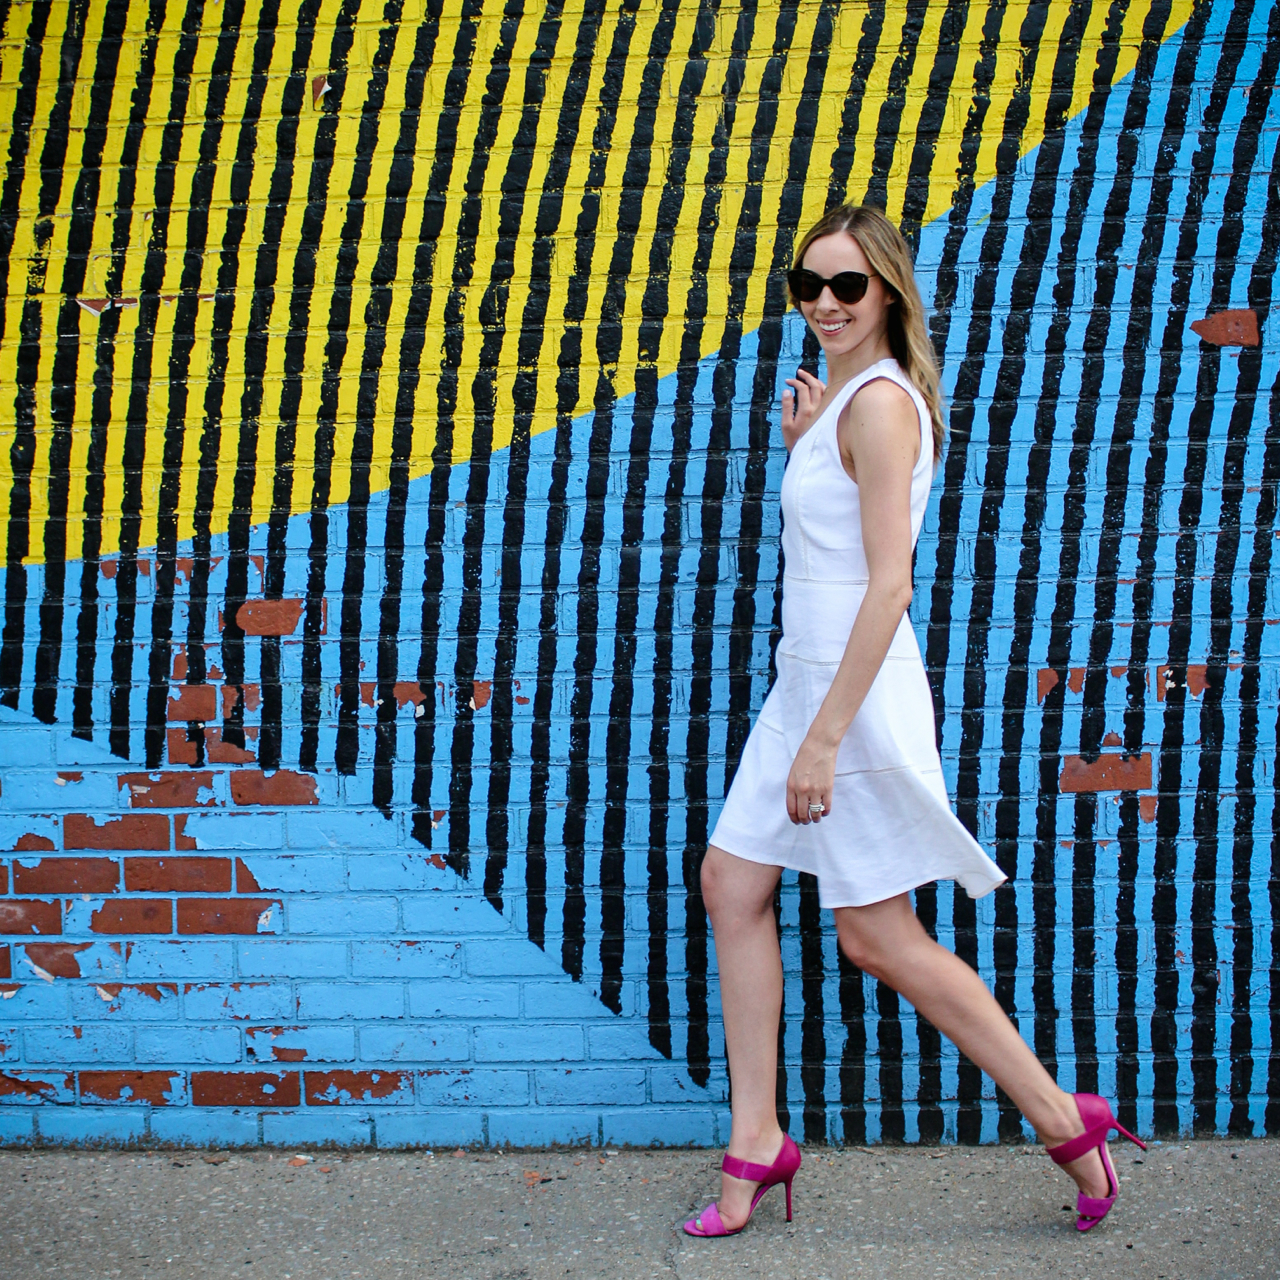 Theory Jemion Crush Wash Linen Dress | Theory LWD | Jimmy Choo Jazzberry Tallow Heels | Illesteva Palm Beach Sand Sunglasses